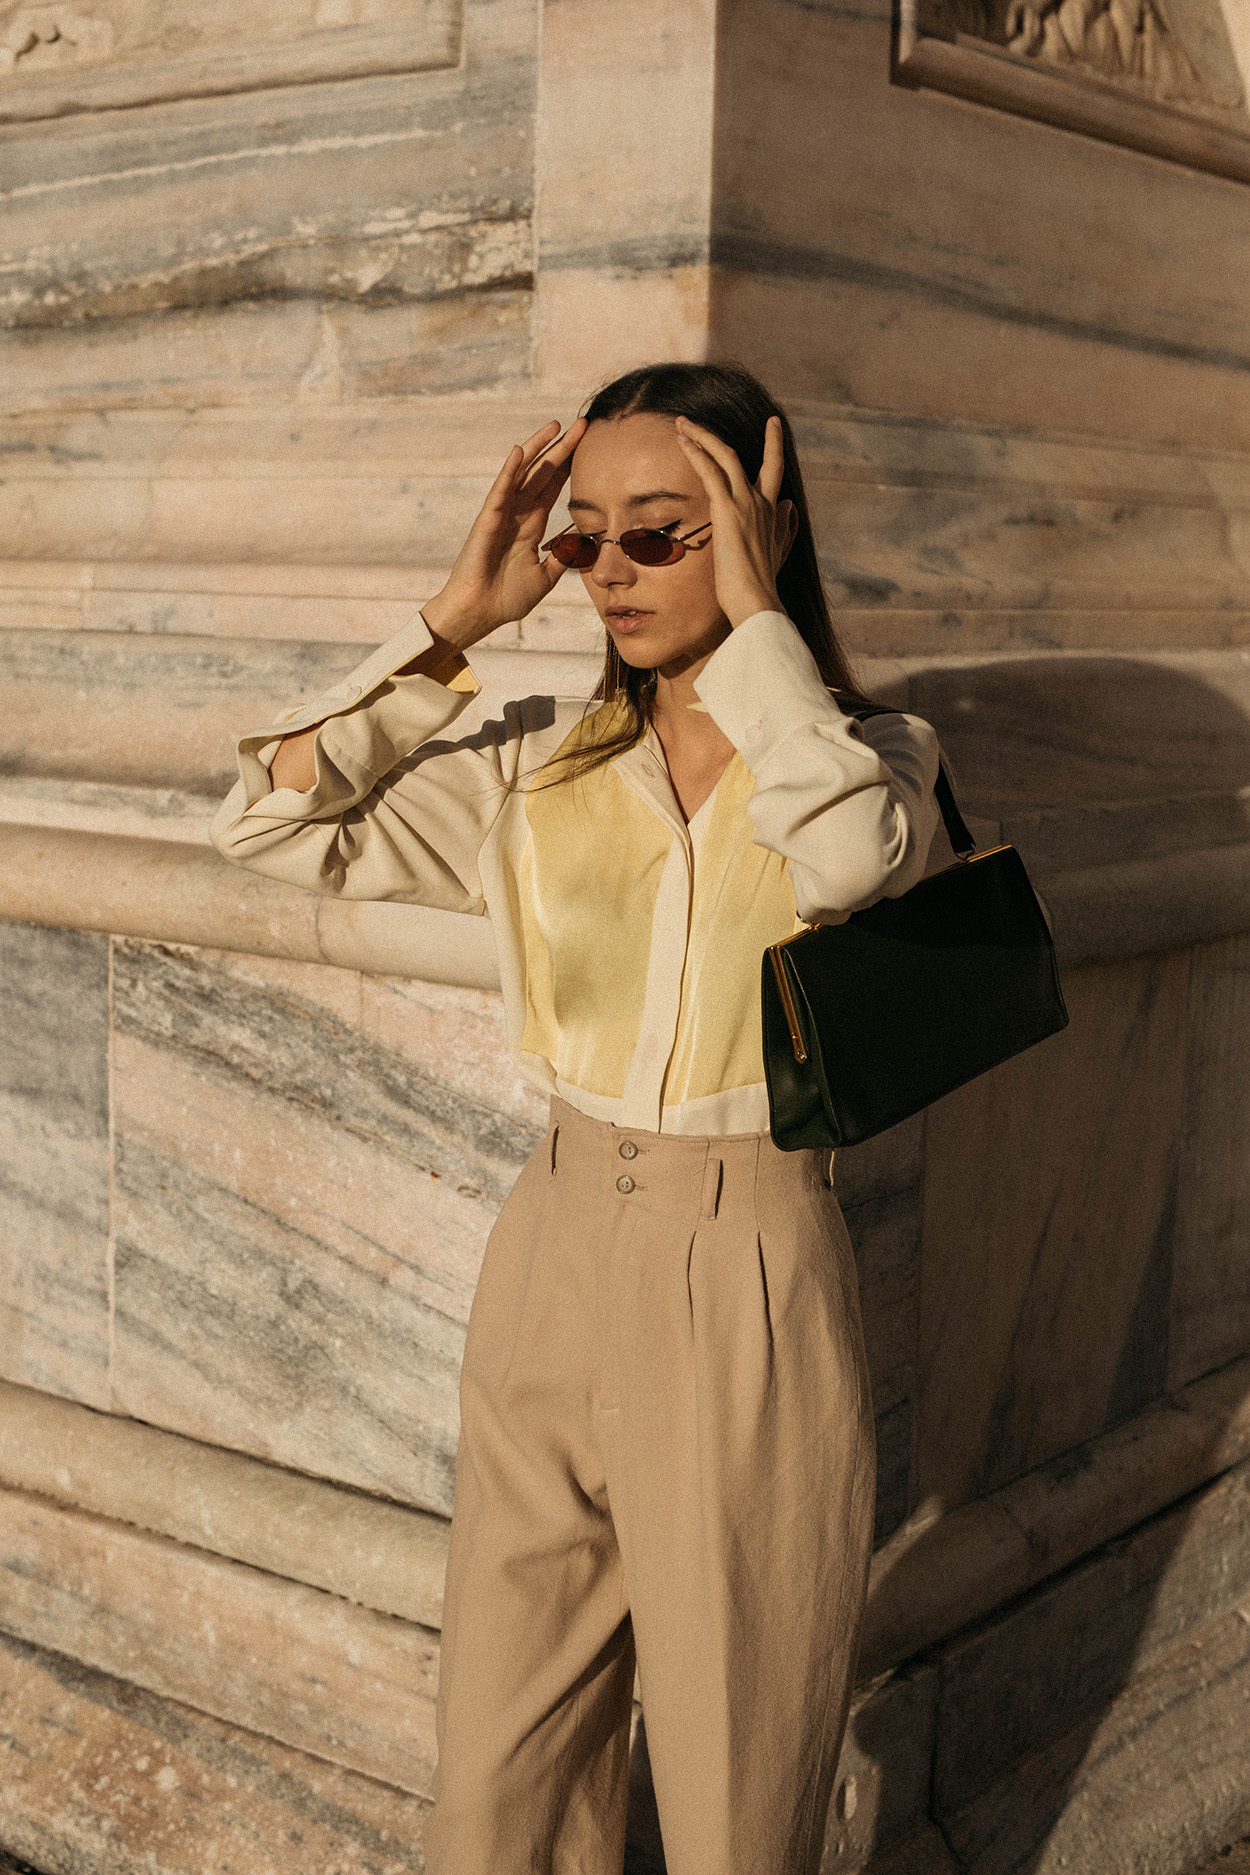 Vintage-round-sunglasses-90s-fashion-style-milan-editorial-by-malene-birger-lemon-yellow-silk-blouse-outfit-ideas.jpg